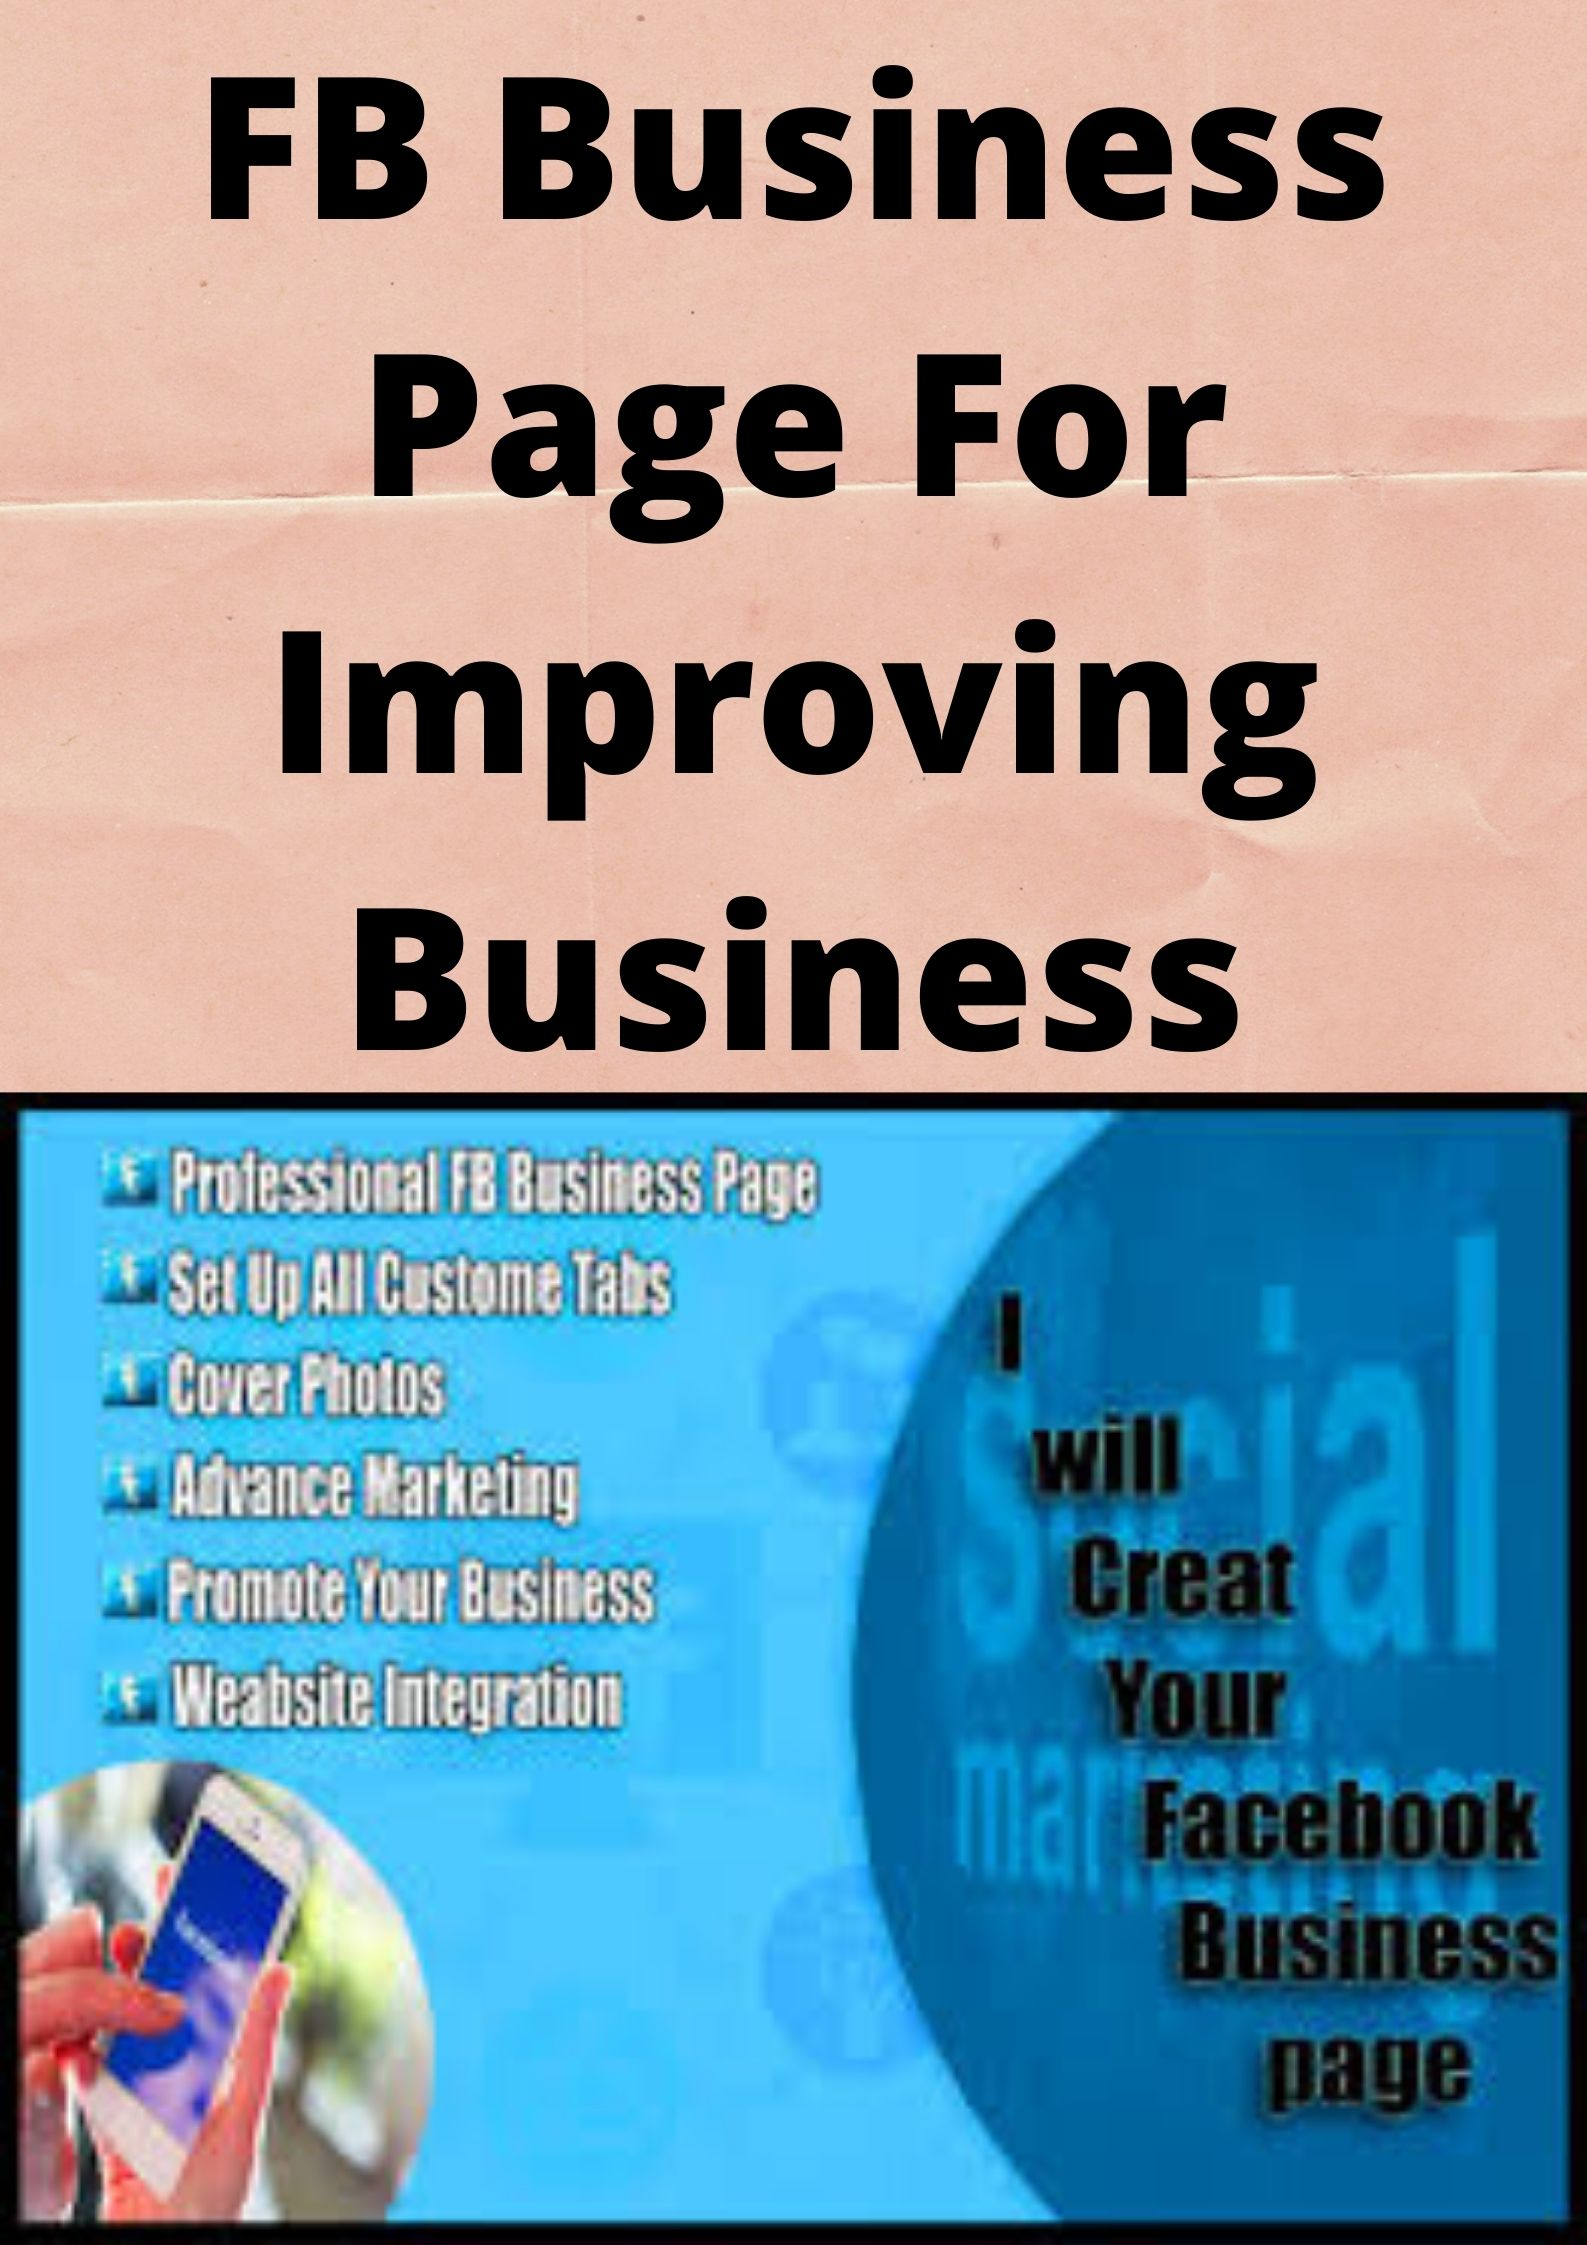 FB Business Page for Improving Your Business